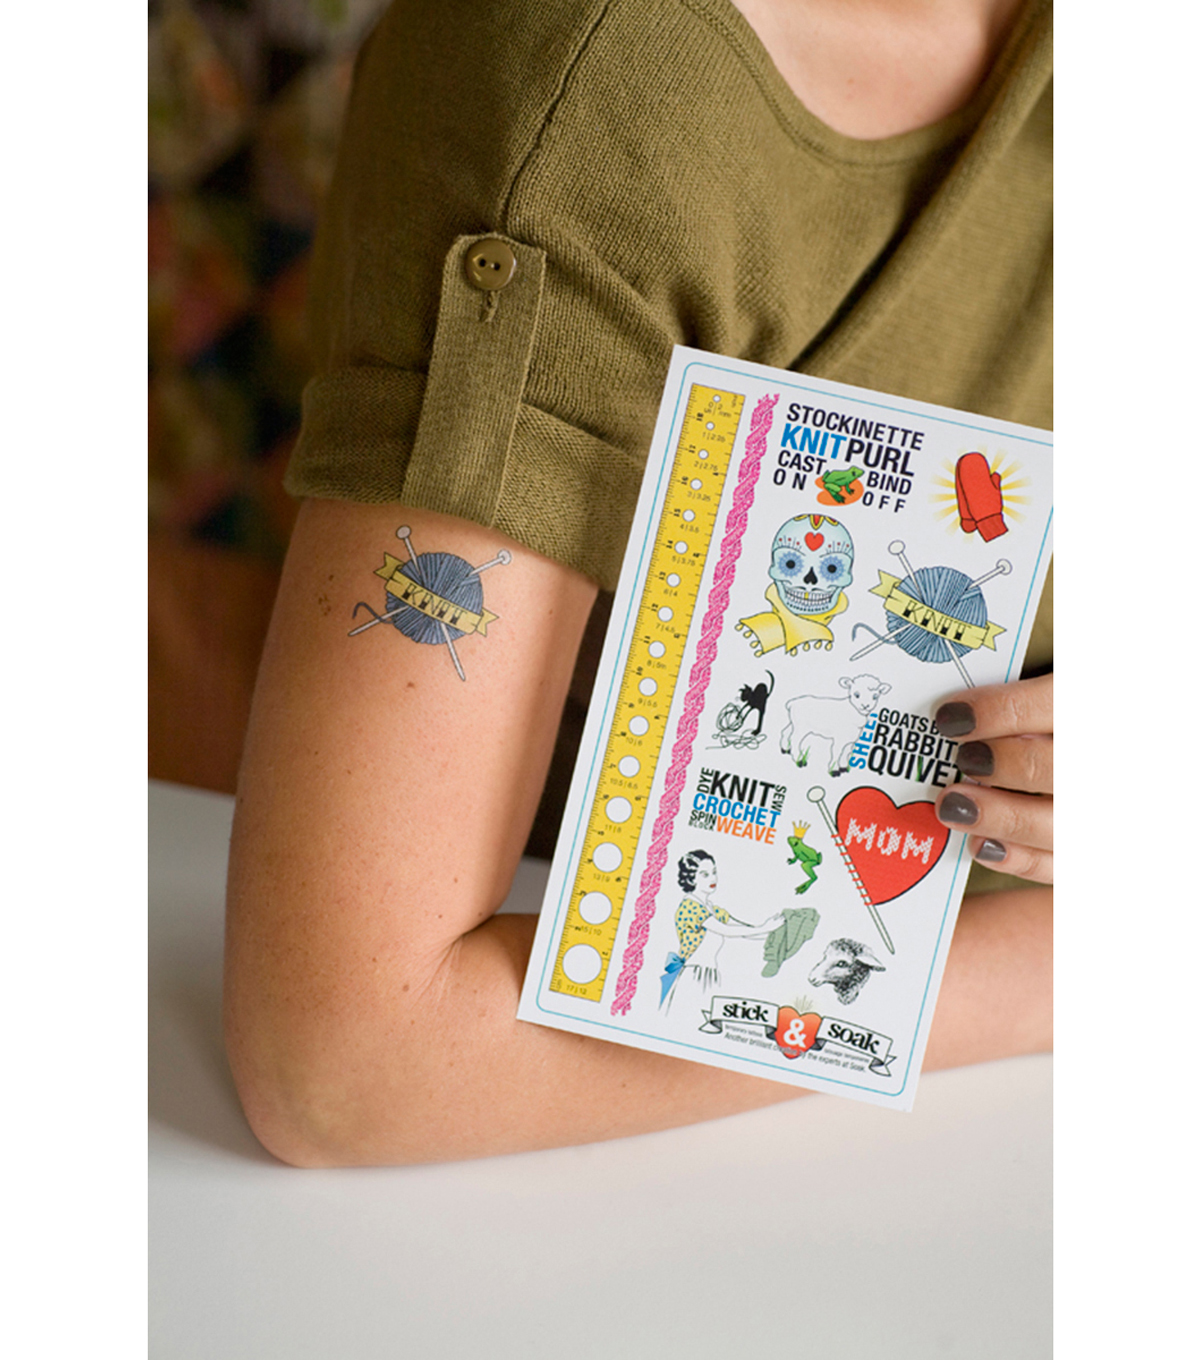 Soak Stick\u0027n Soak Tattoos